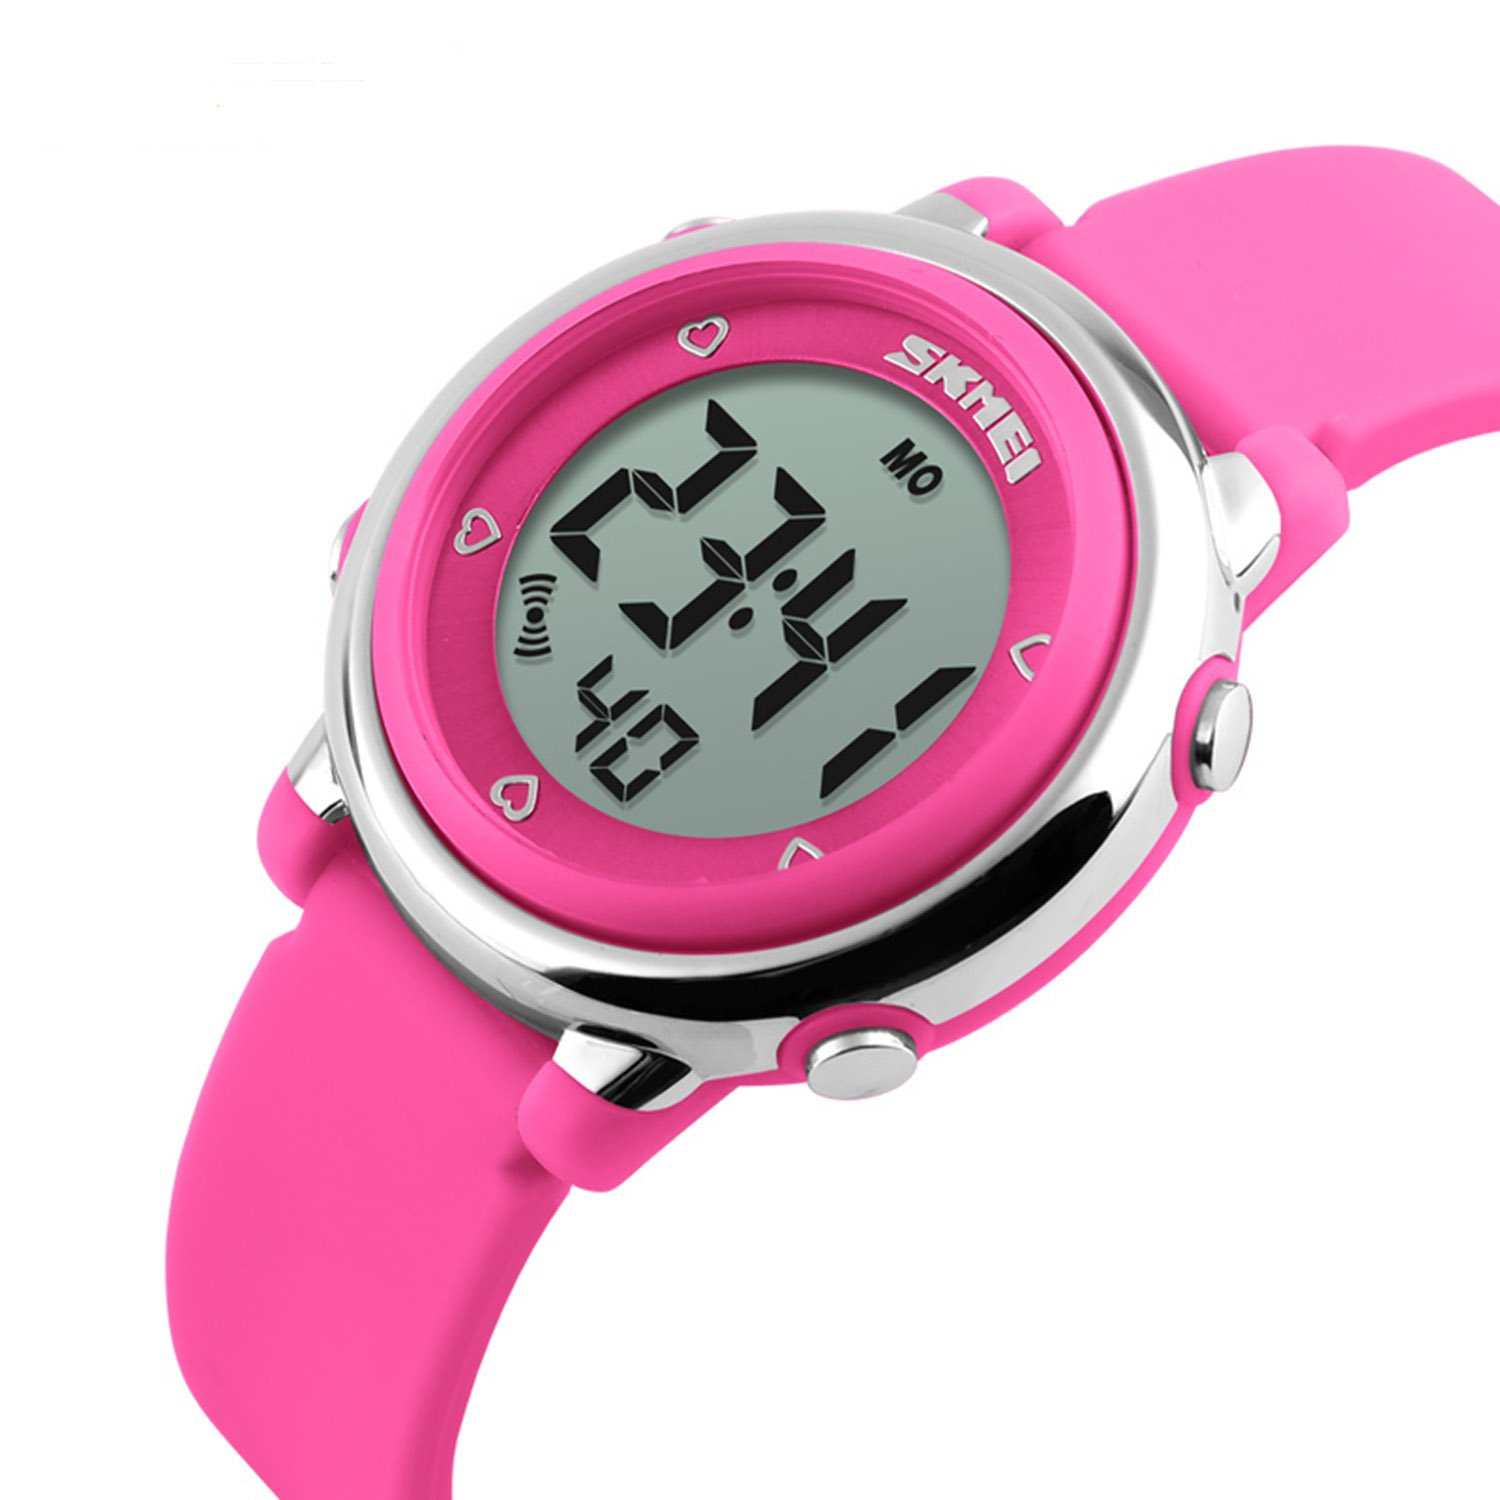 Skmei 1100 Original Fashion niños relojes banda de silicona pantalla LED resistente al agua reloj Digital Rose Red: Amazon.es: Relojes